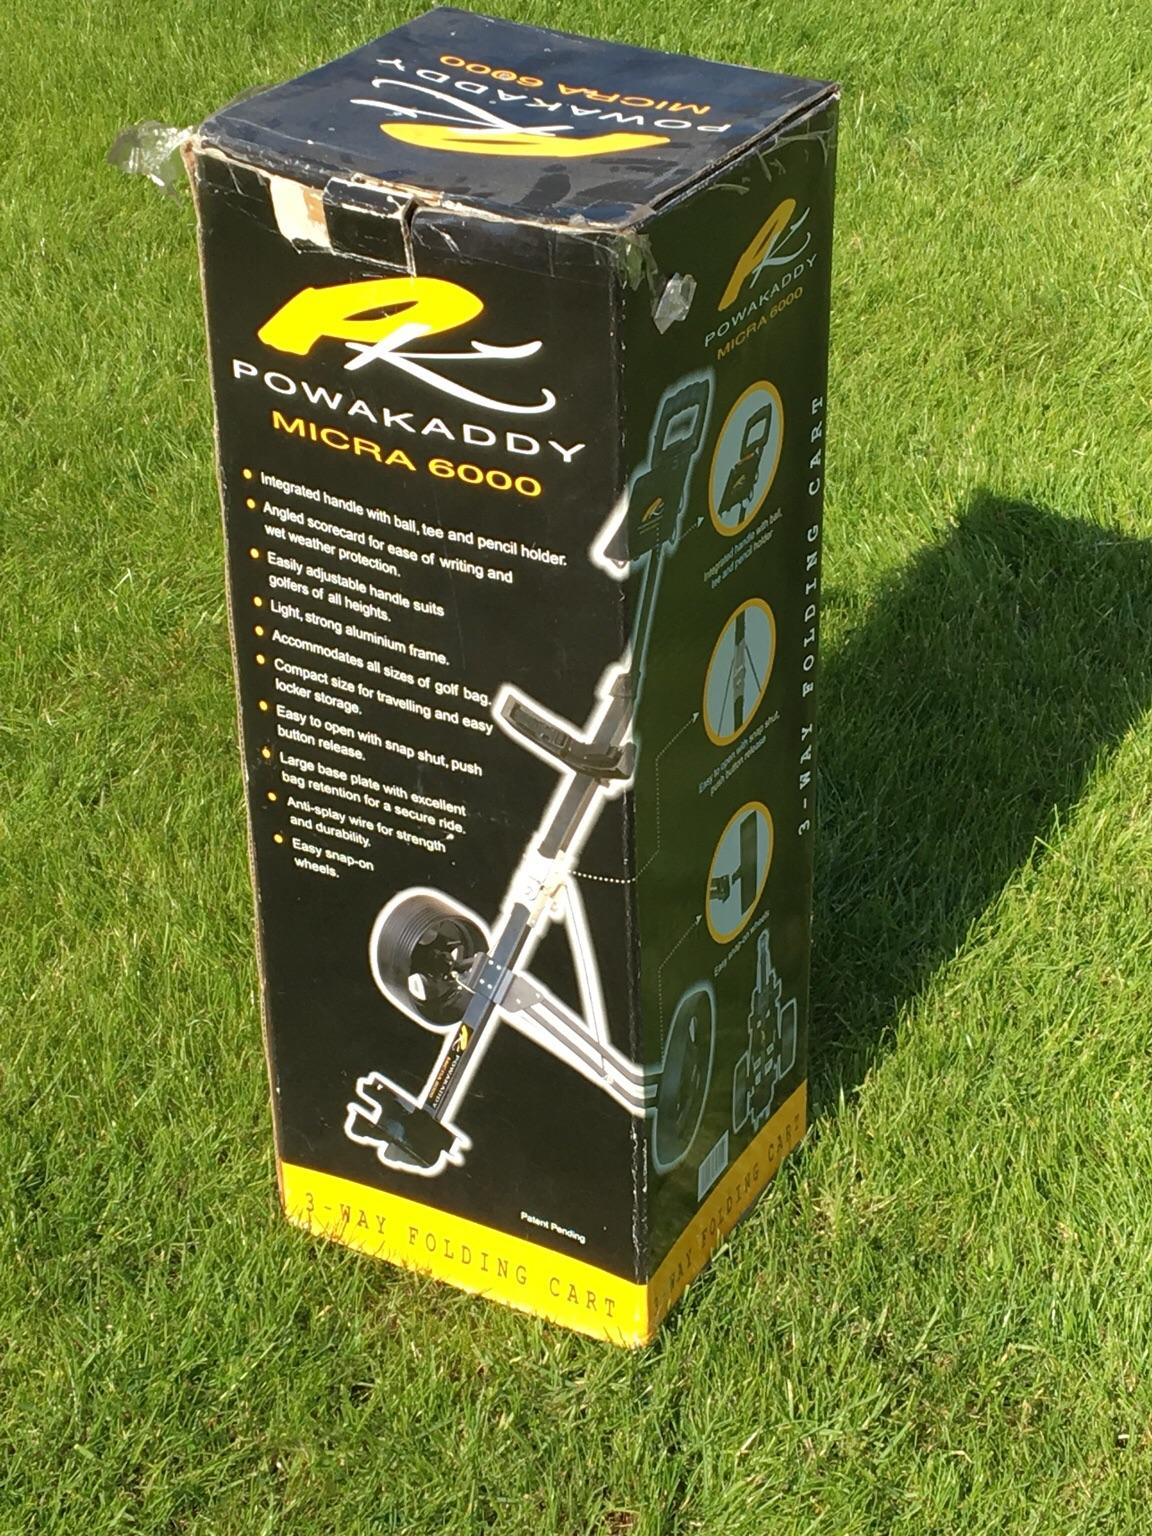 Powakaddy Micra 600 Foldable Golf Trolley